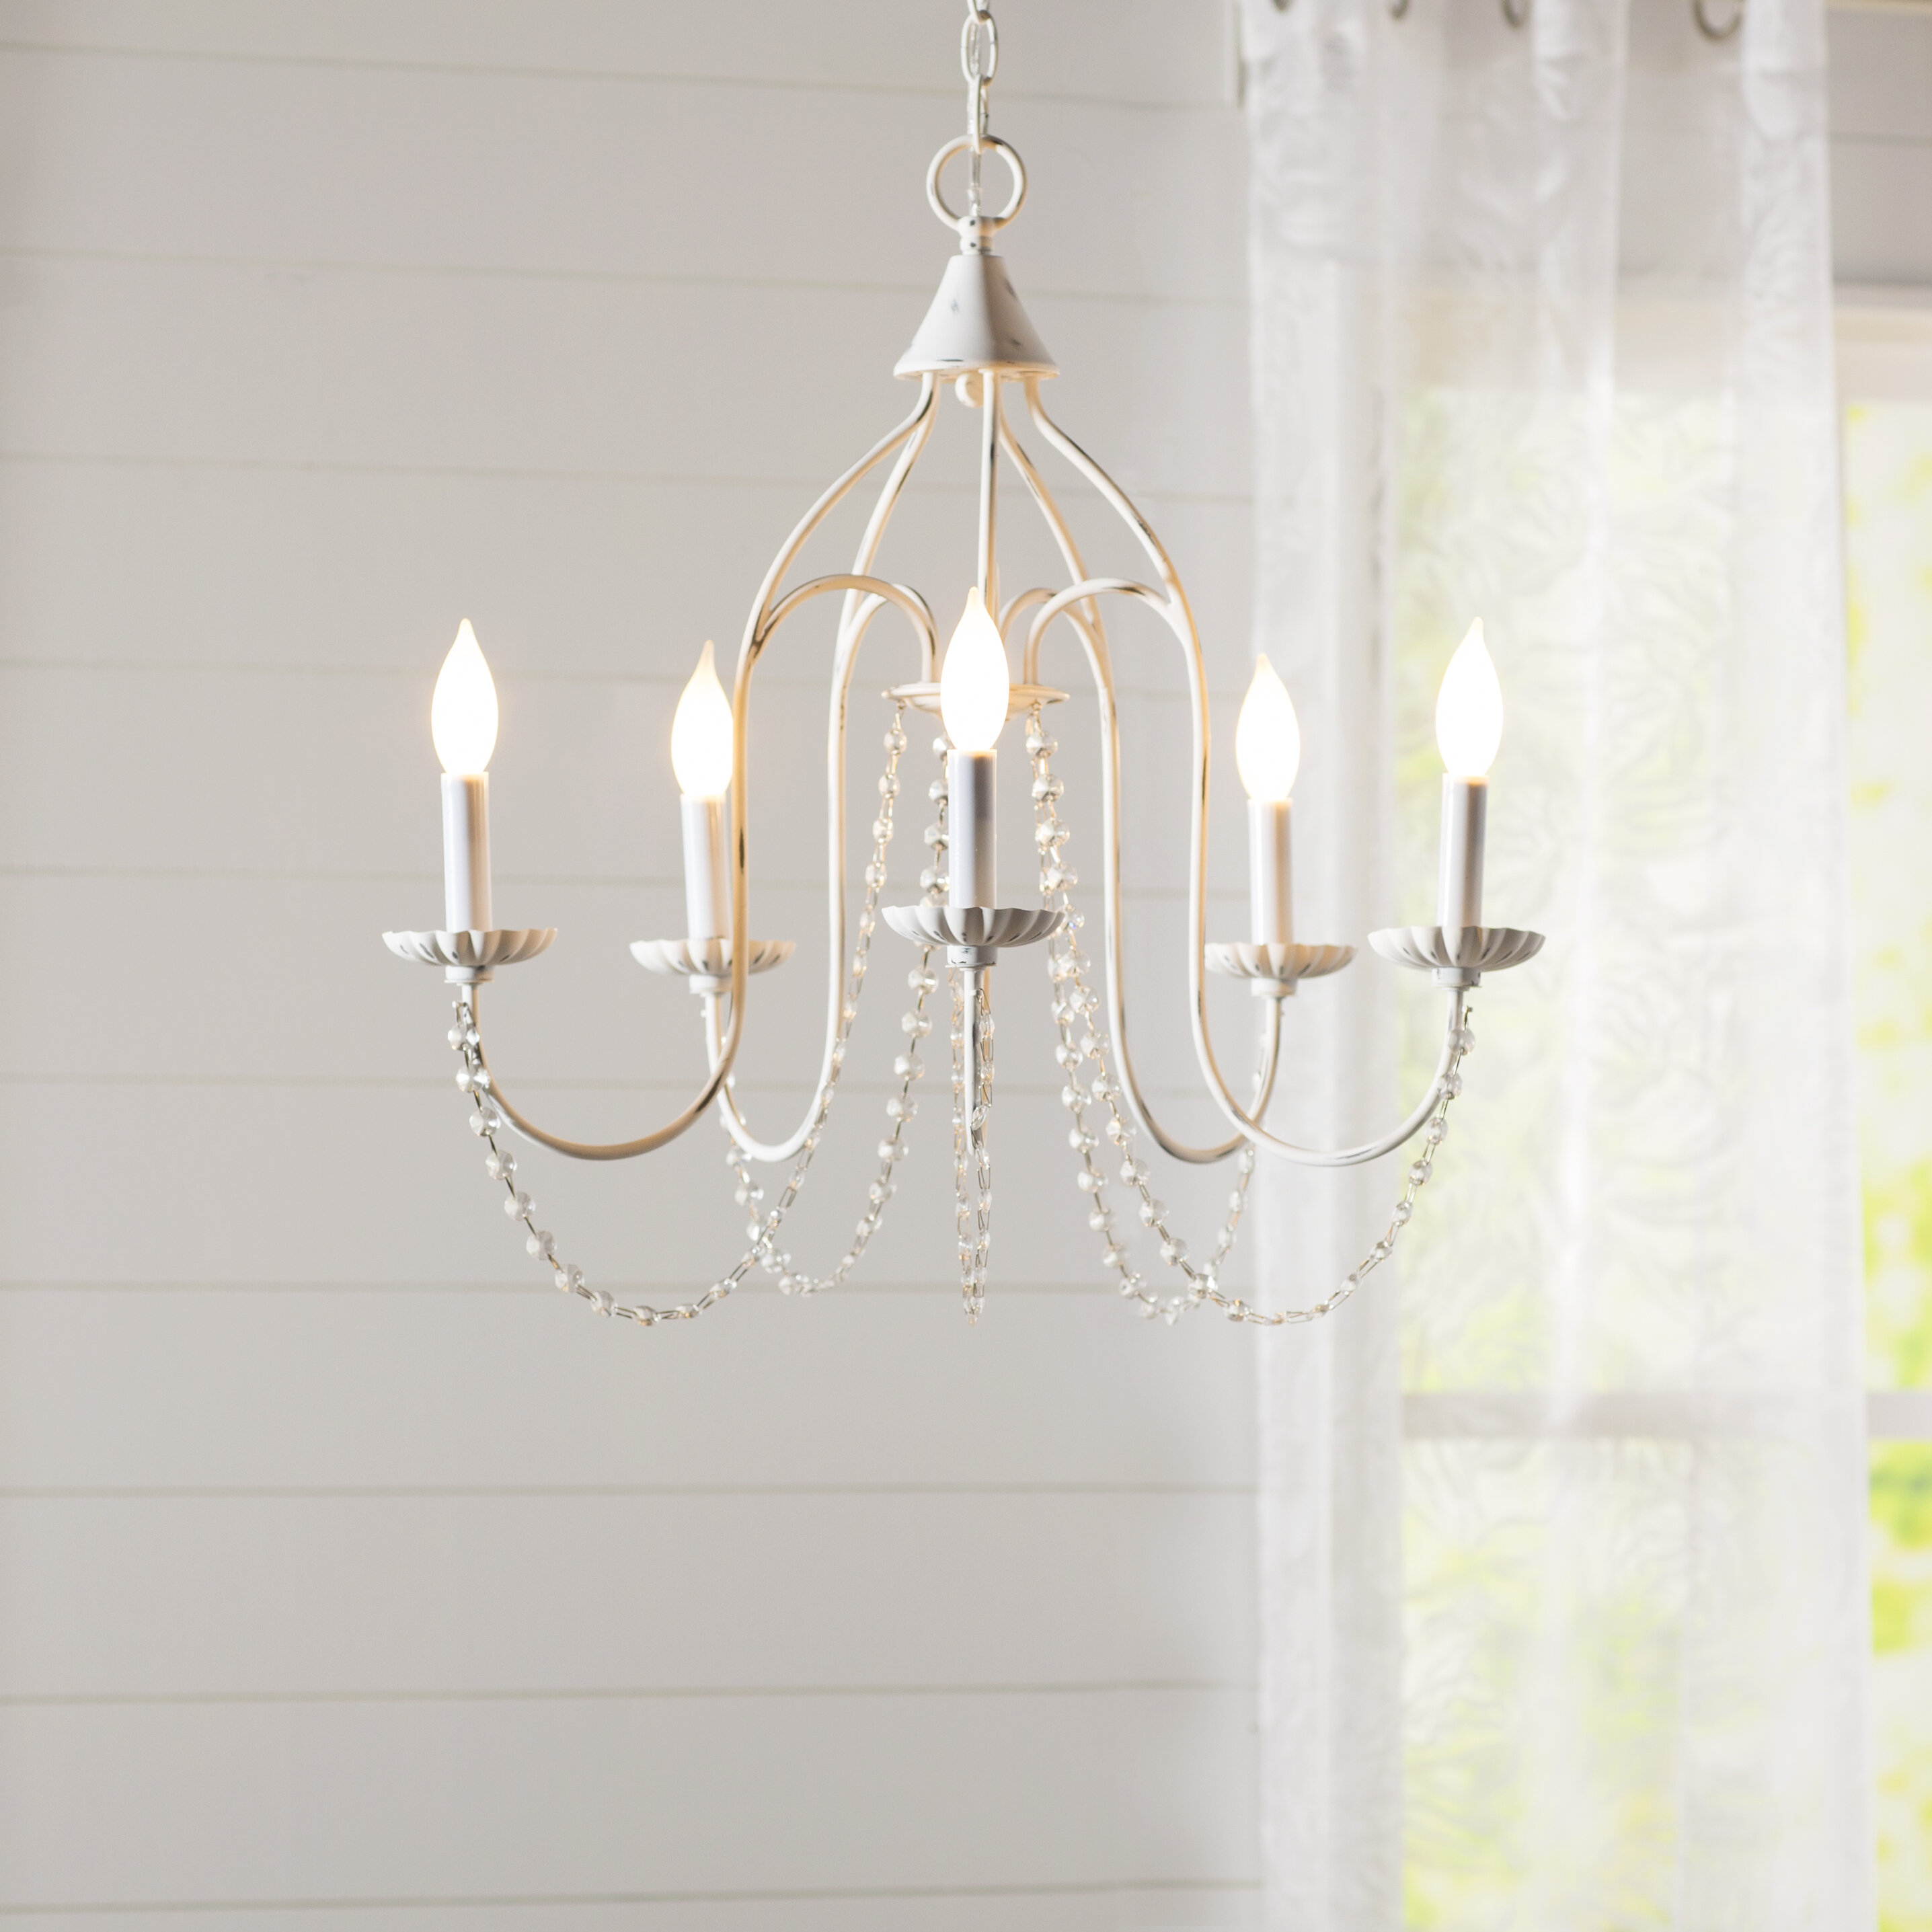 Ophelia & Co. Florentina 5-Light Candle-Style Chandelier & Reviews ...